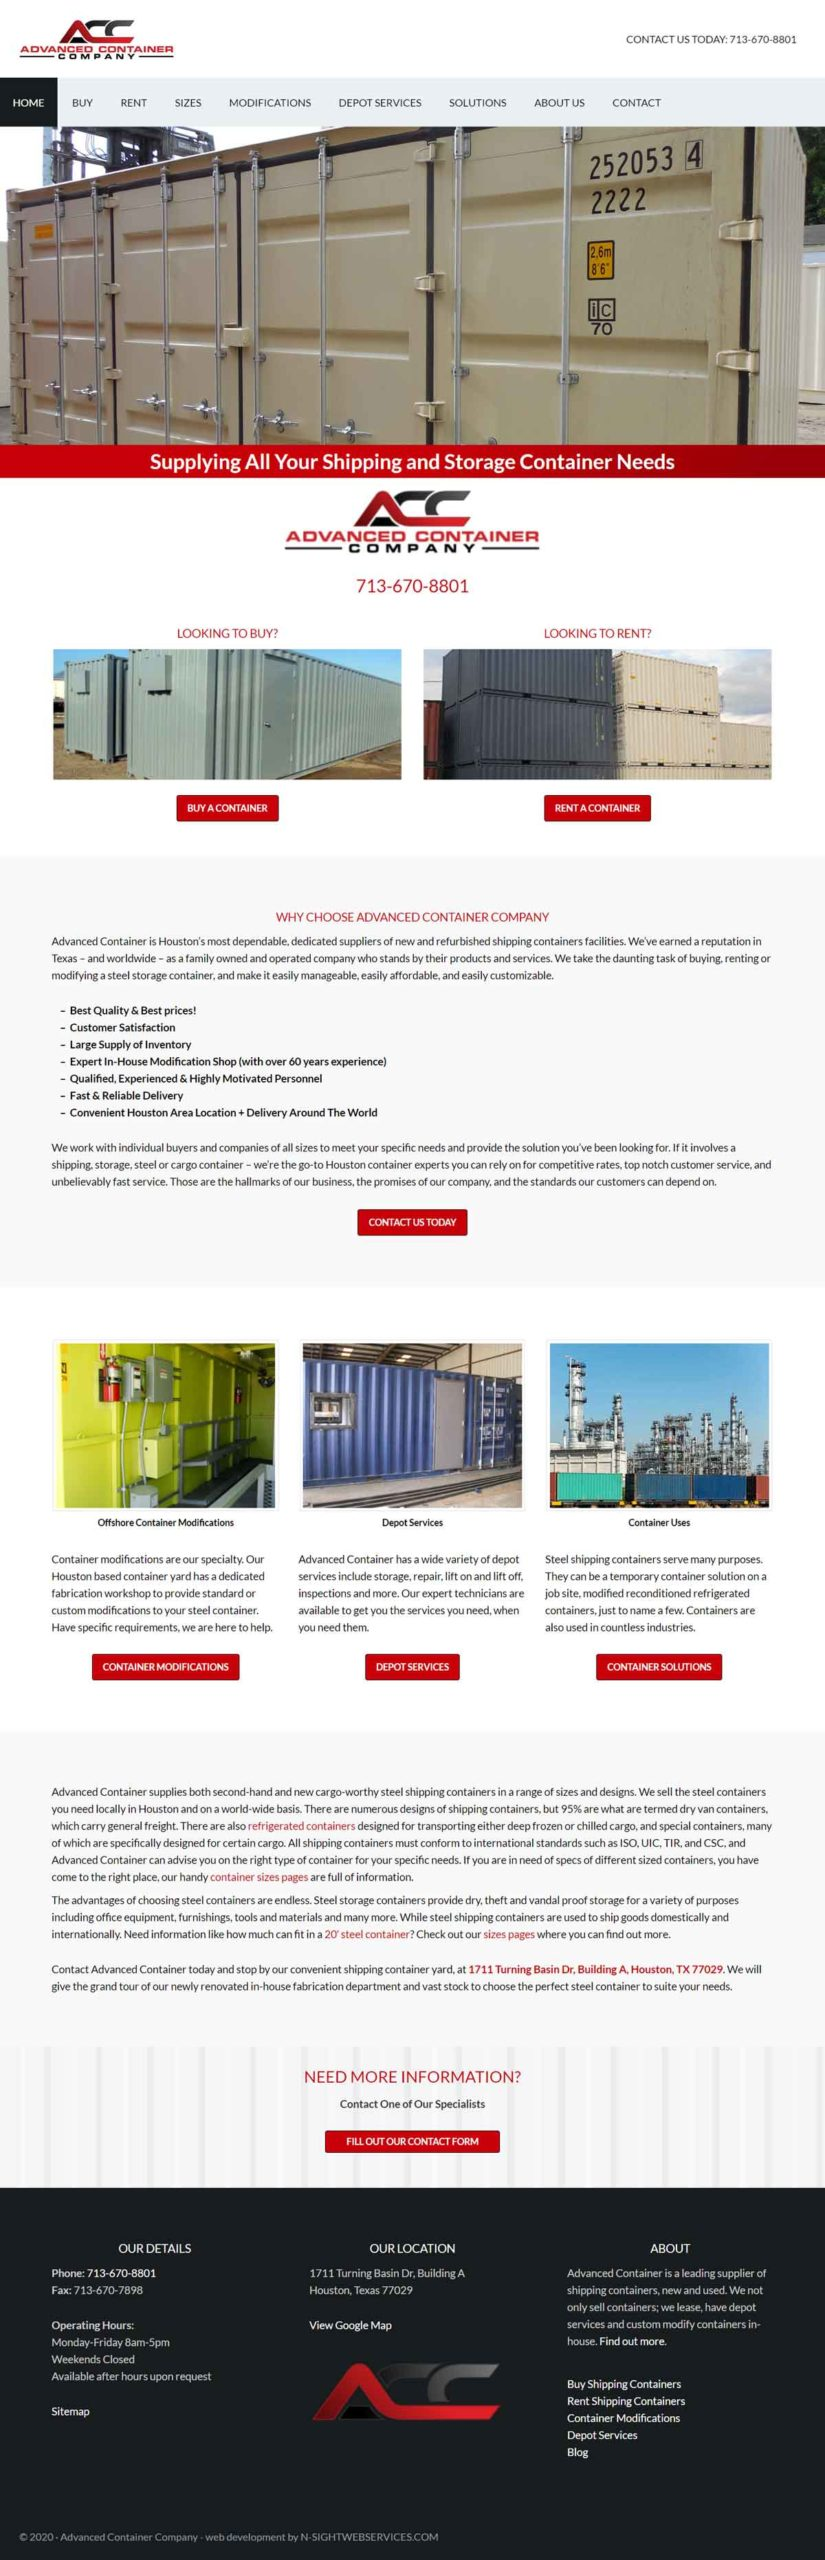 Advanced-Container-Co-Home-Page